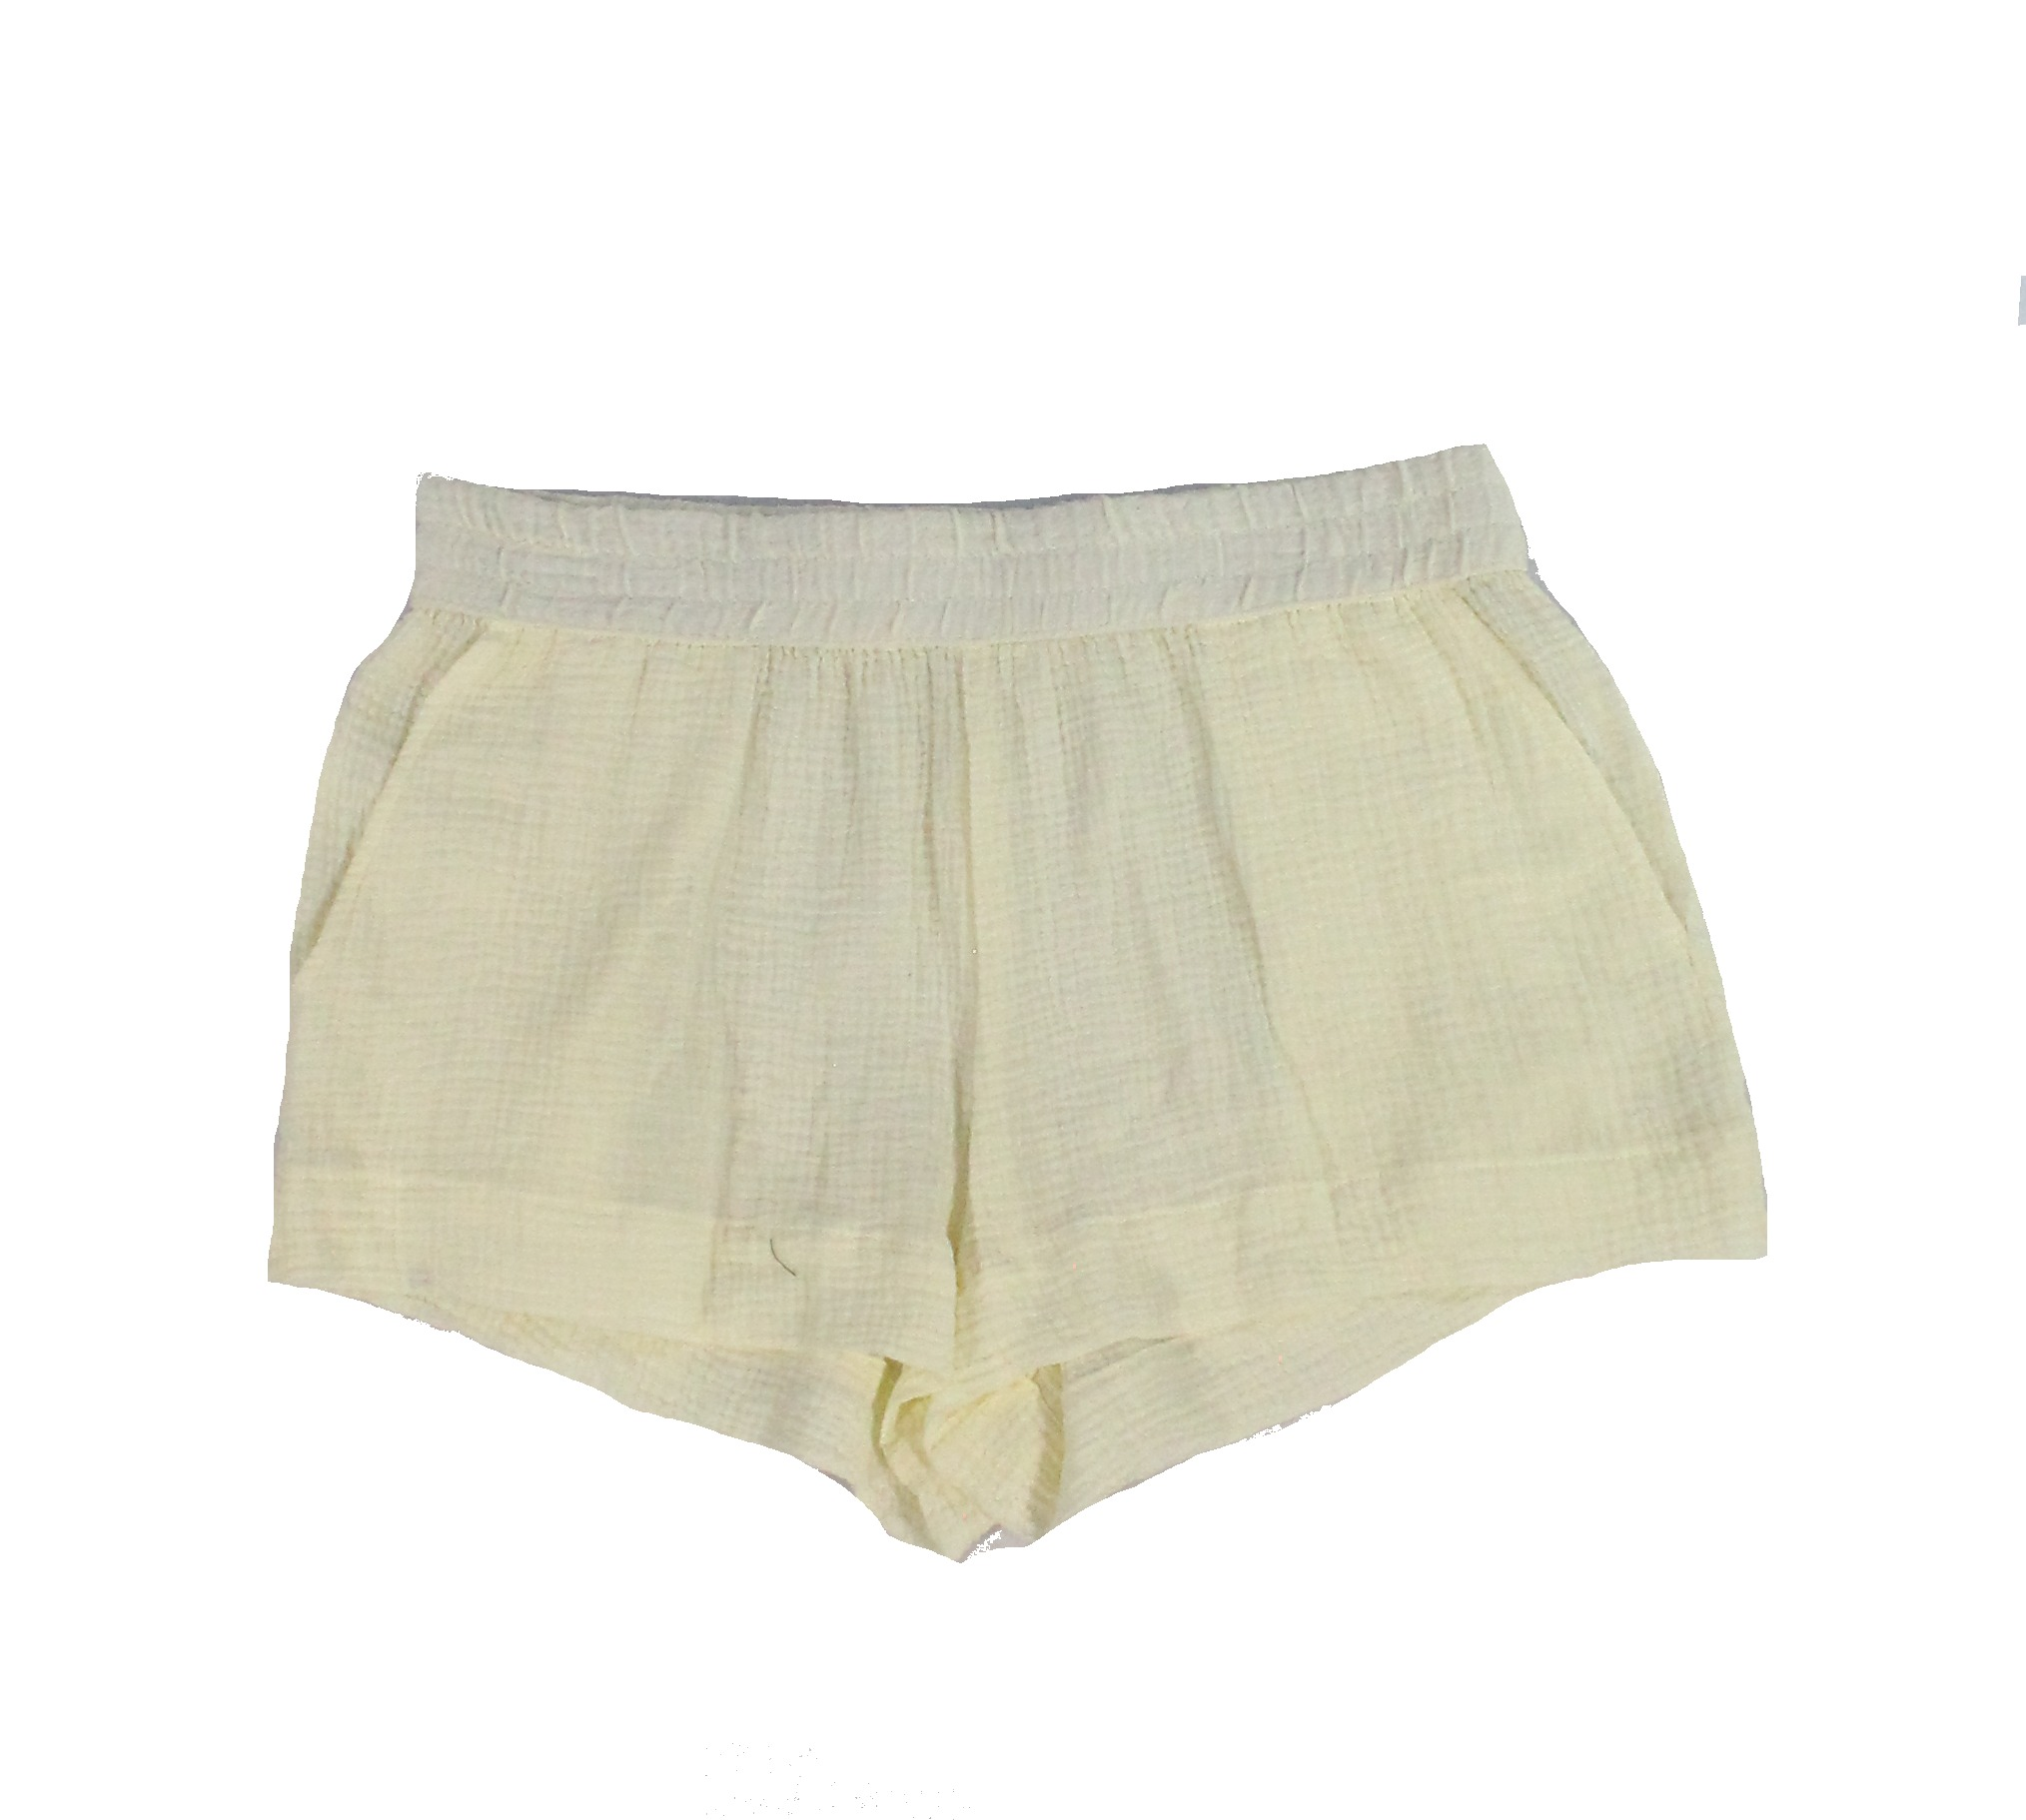 d6304a82d Details about Designer Brand NEW White Womens Size Medium M Pull On Soft  Shorts $30- 183